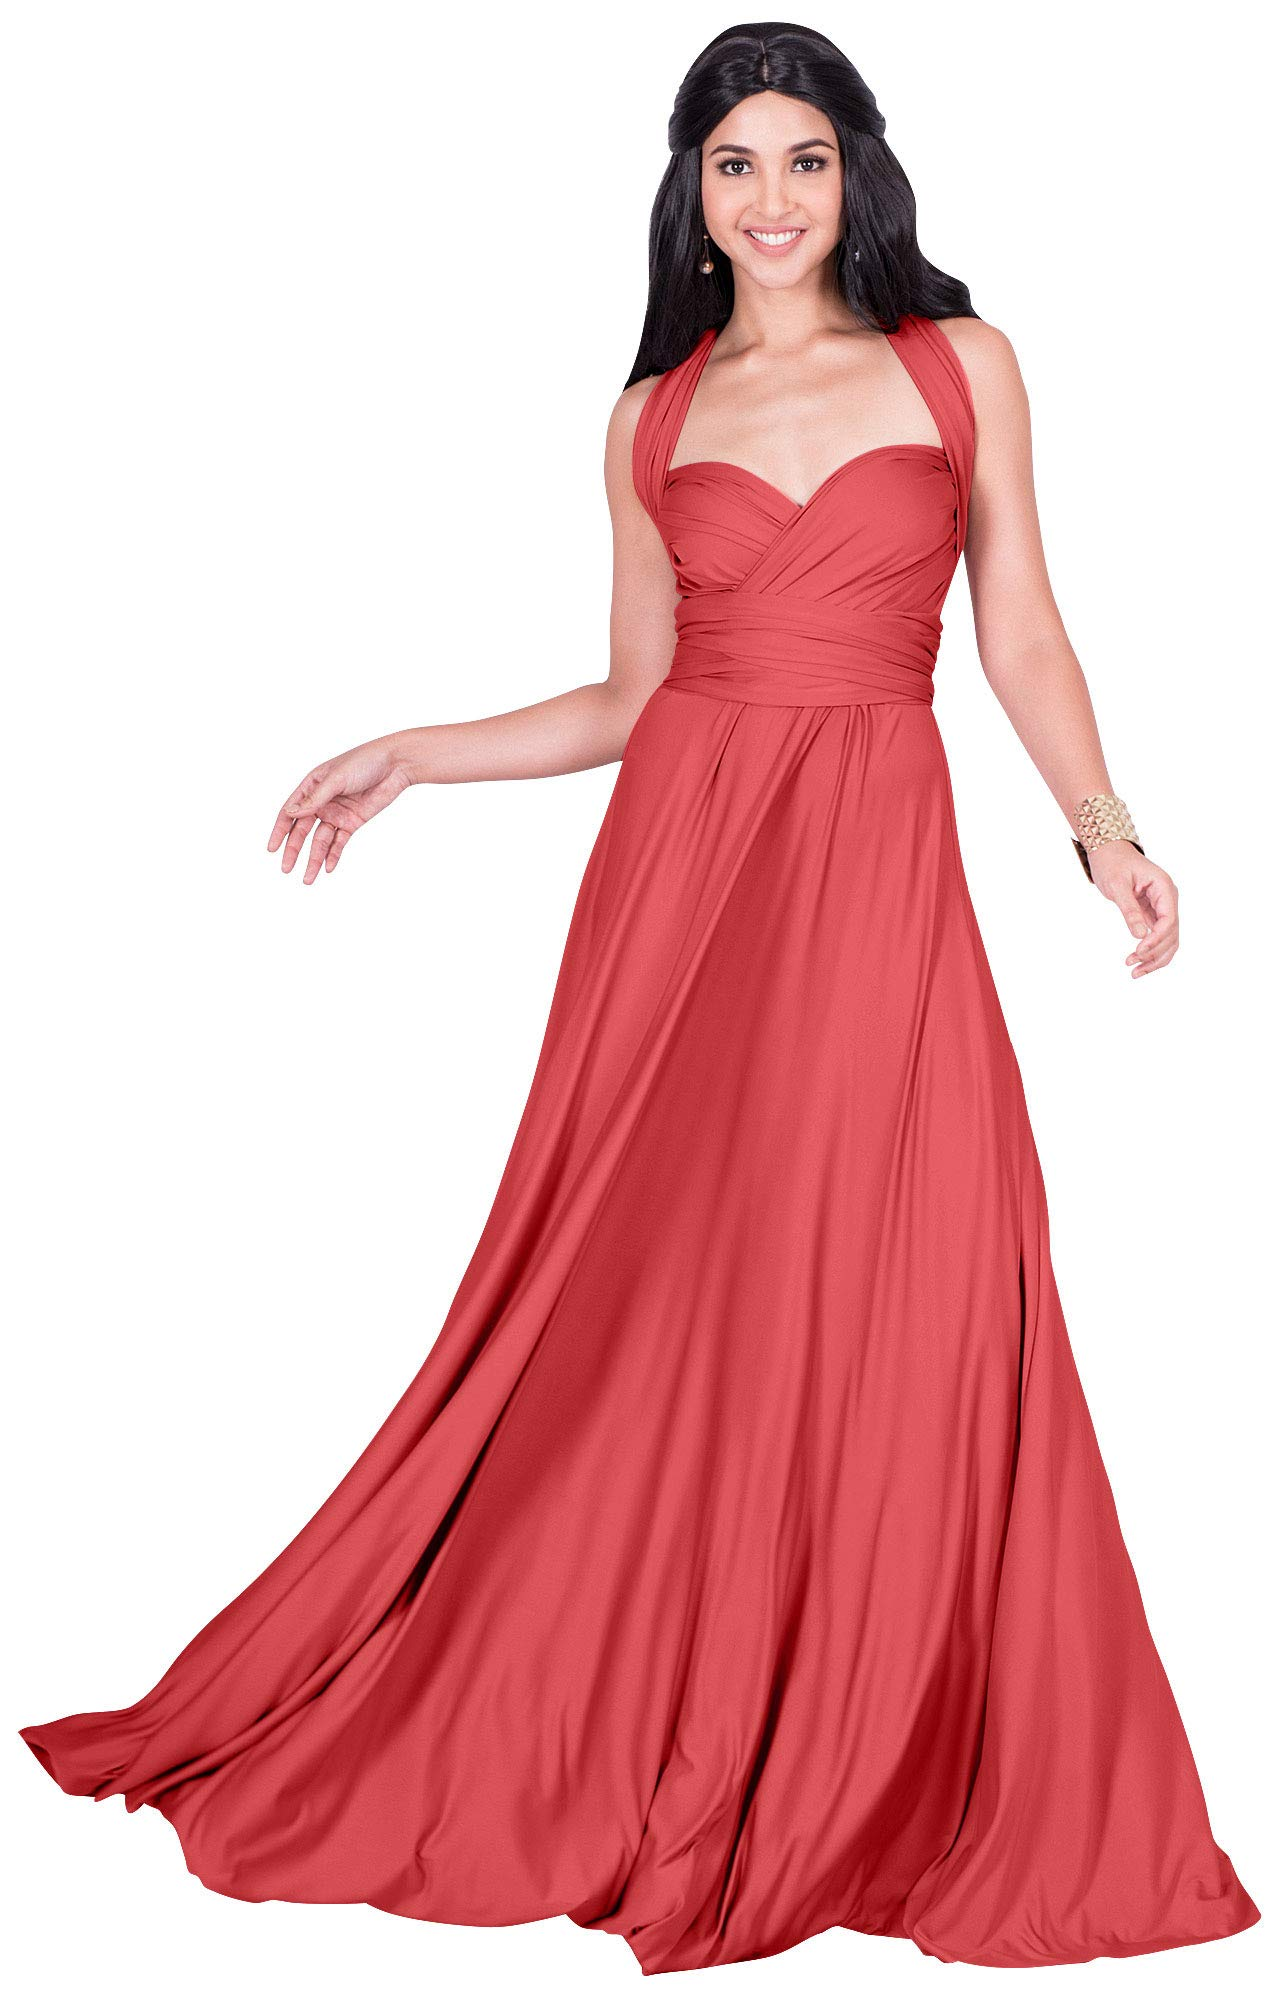 529286ffb3f KOH KOH Plus Size Womens Long Bridesmaid Multi-Way Wedding Convertible Wrap  Infinity Cocktail Sexy Summer Party Formal Prom Transformer Gown Gowns Maxi  ...